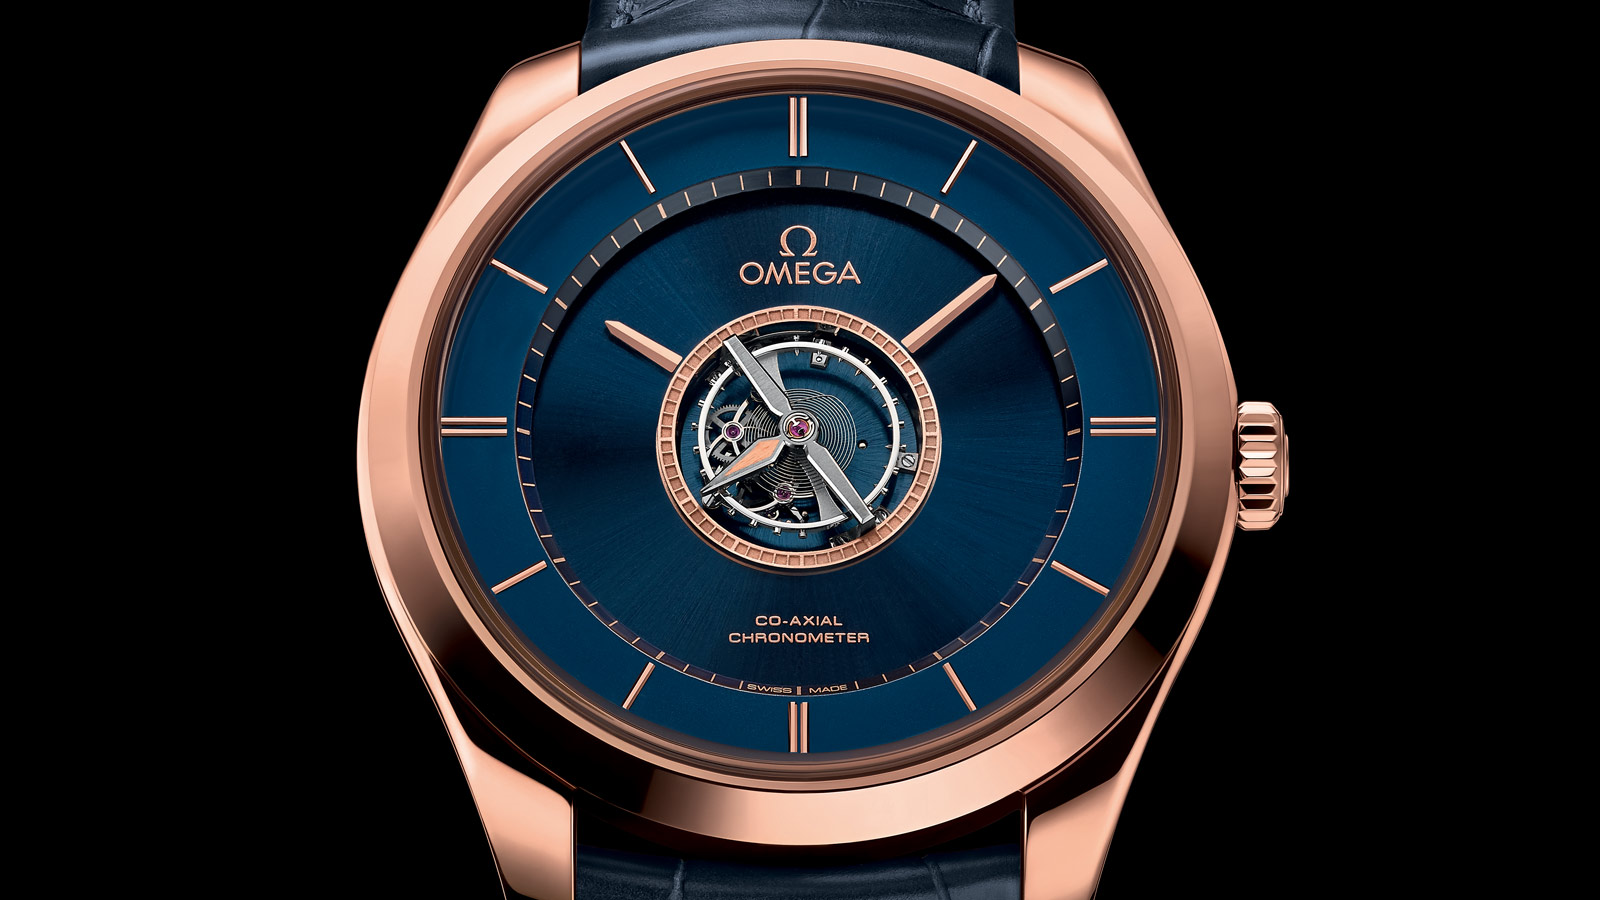 De Ville トゥールビヨン Tourbillon Co‑Axial Numbered Edition 44 mm - 528.53.44.21.03.001 - ビュー 1